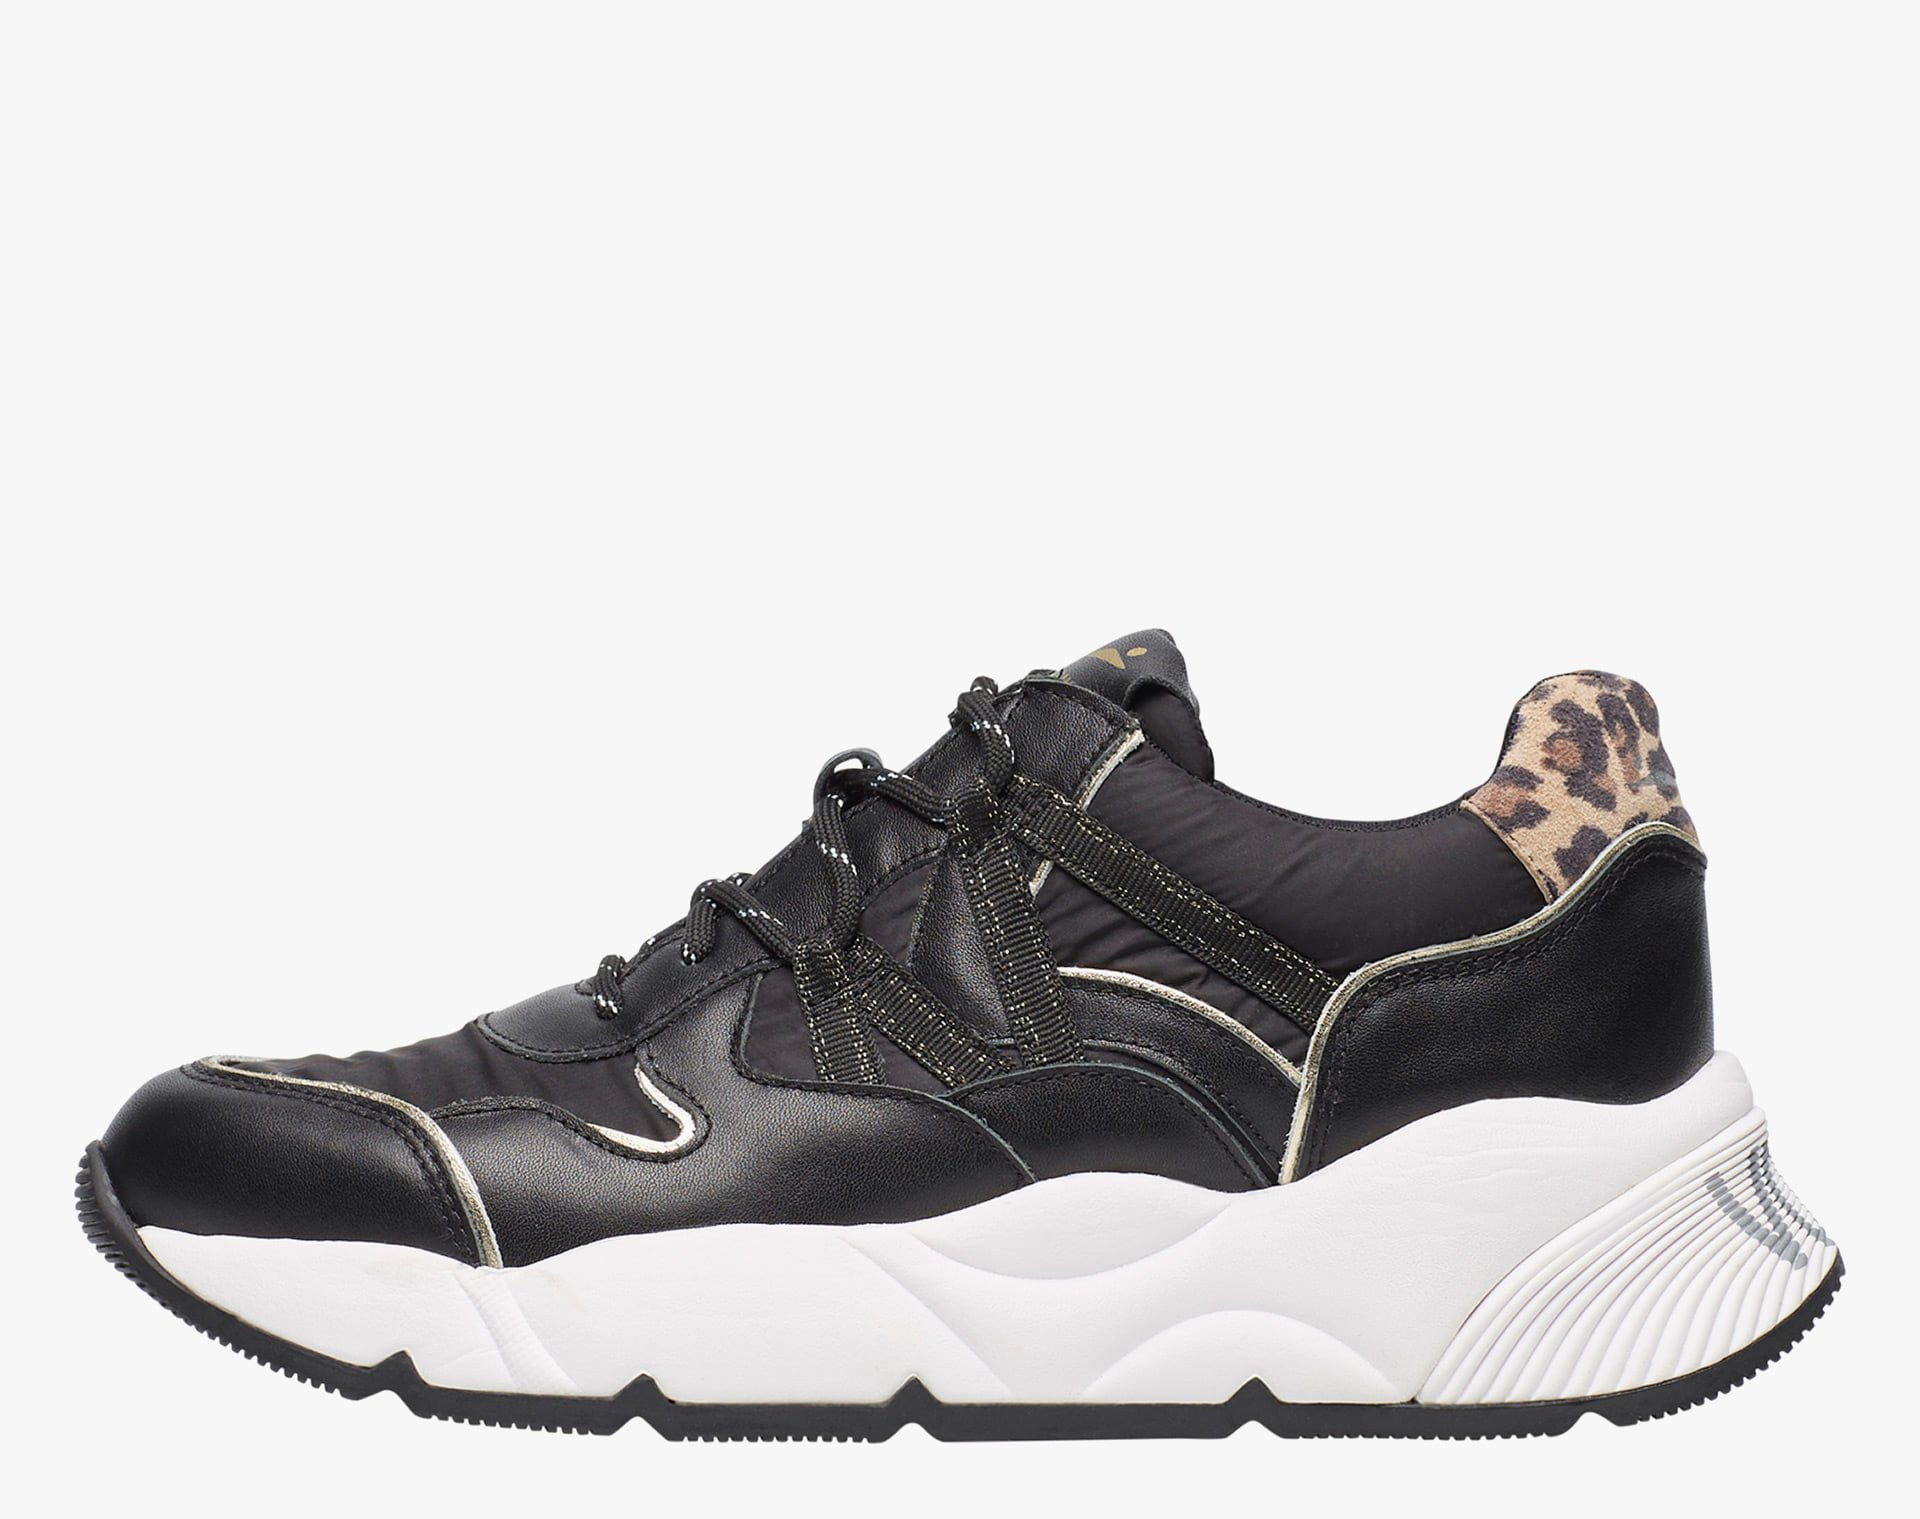 CLUB100 - Leather and technical fabric sneaker with animalier details - Black